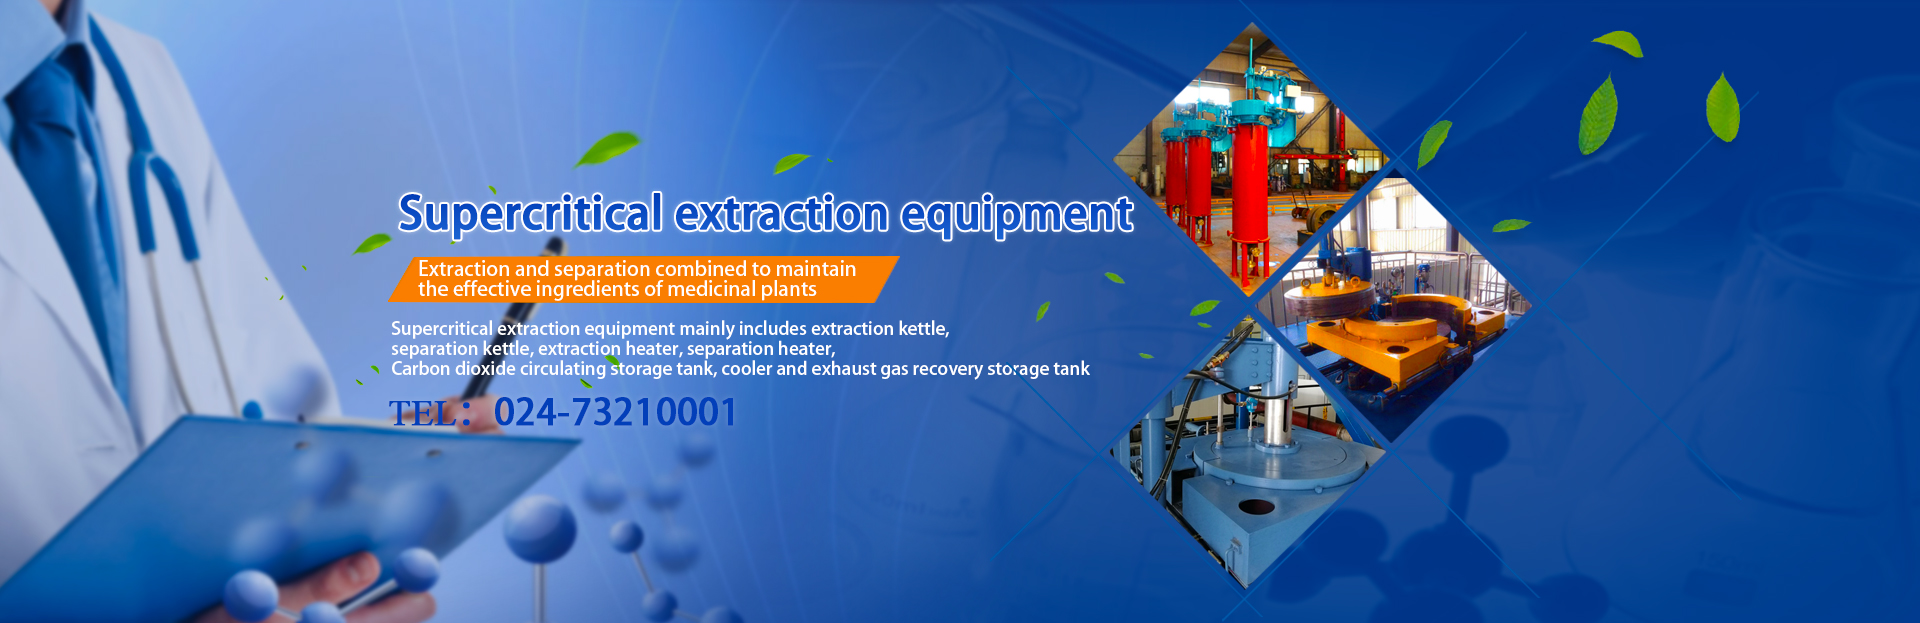 Supercritical extraction equipment